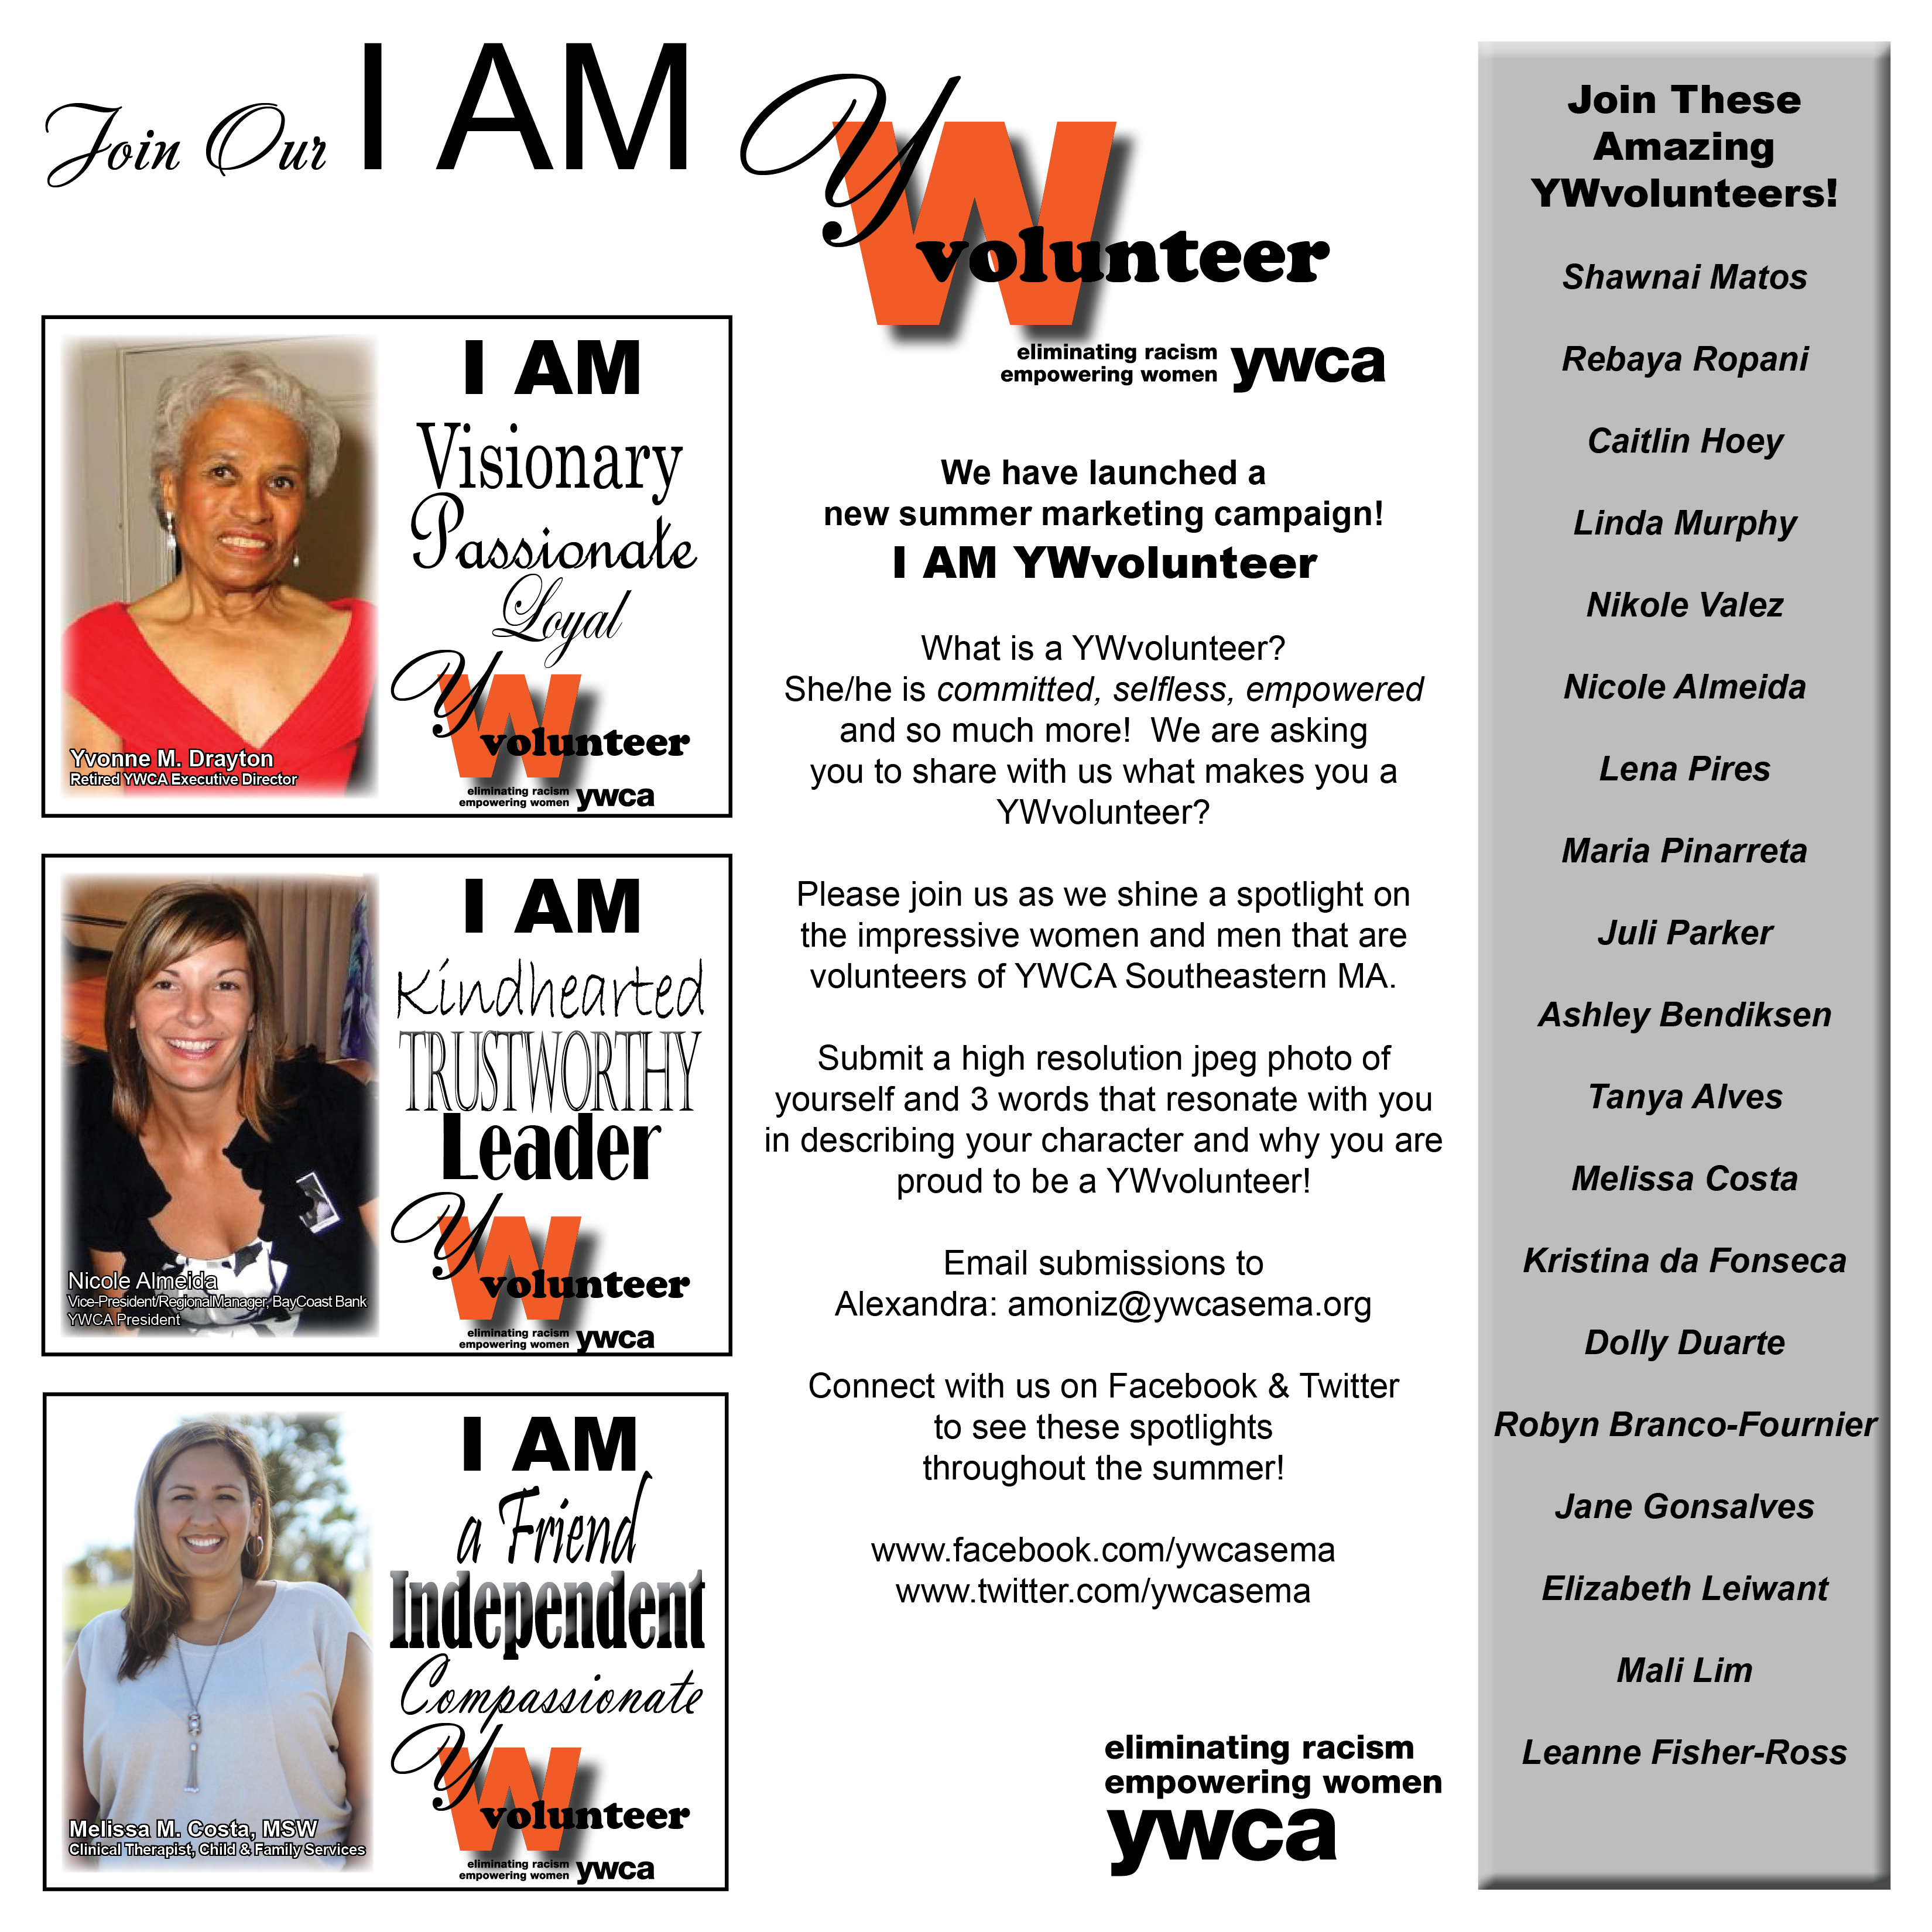 IAMYvolunteerflyer